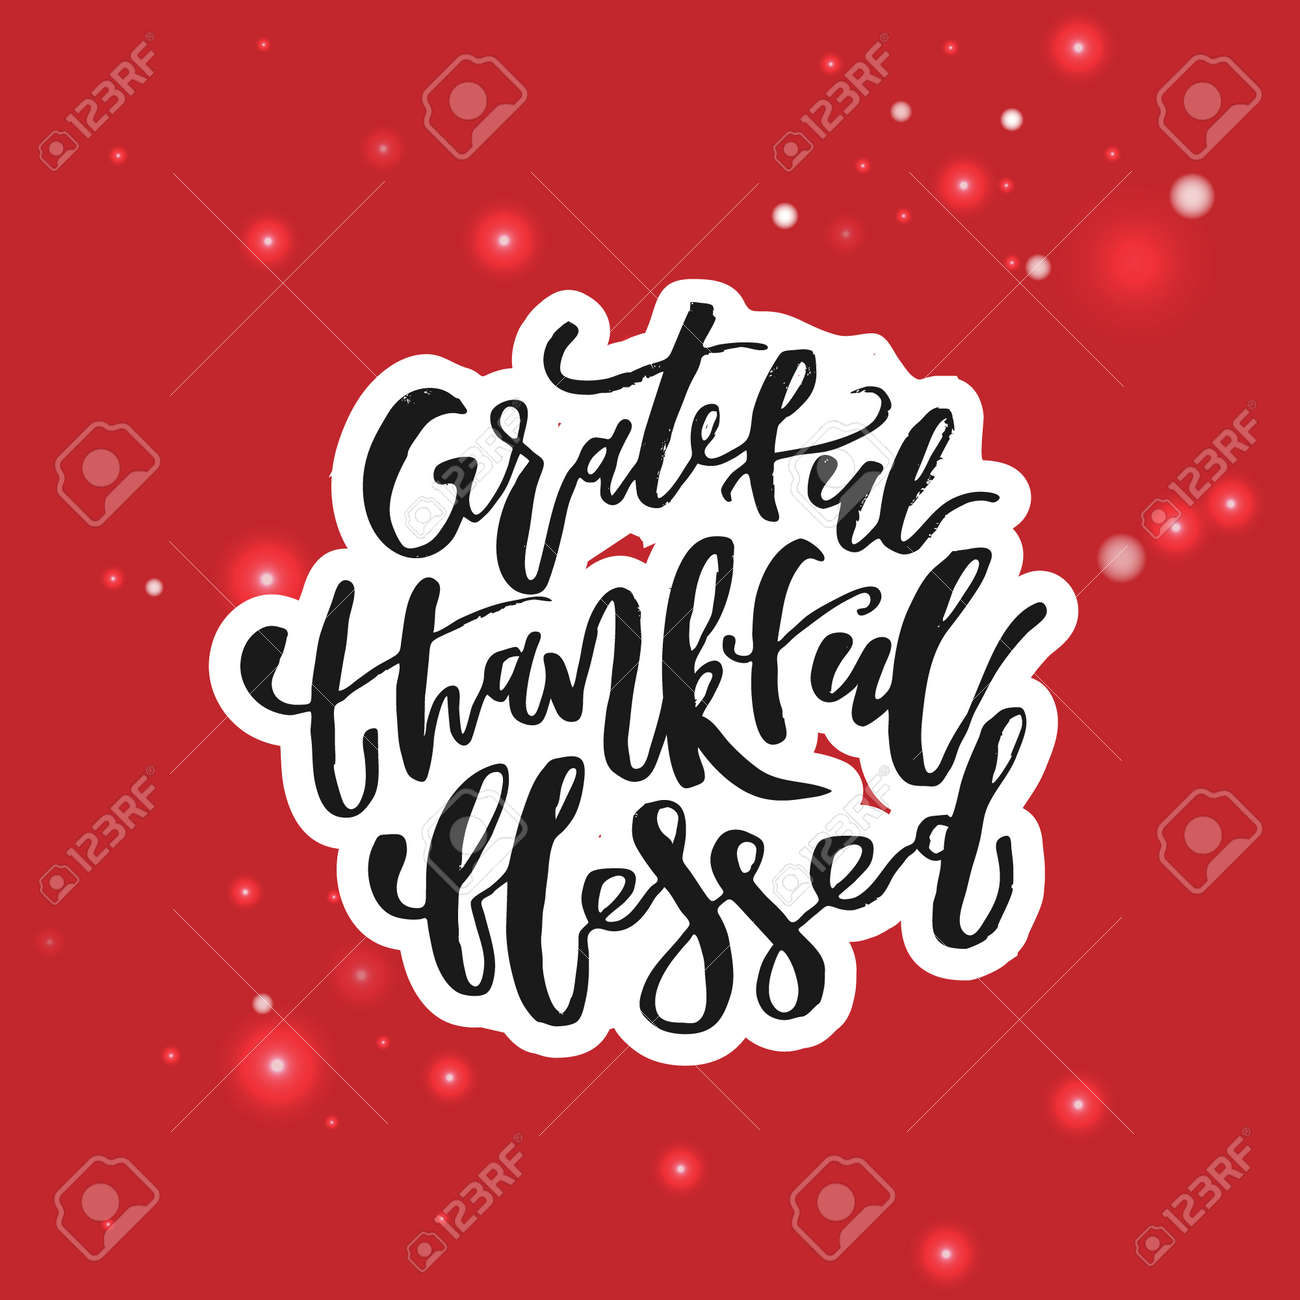 Grateful Thankful Blessed - Inspirational Christmas holiday lettering quote. Good for posters, t-shirt, prints, cards, banners. Christian god religious saying. Typographic vector slogan illustration - 131434542